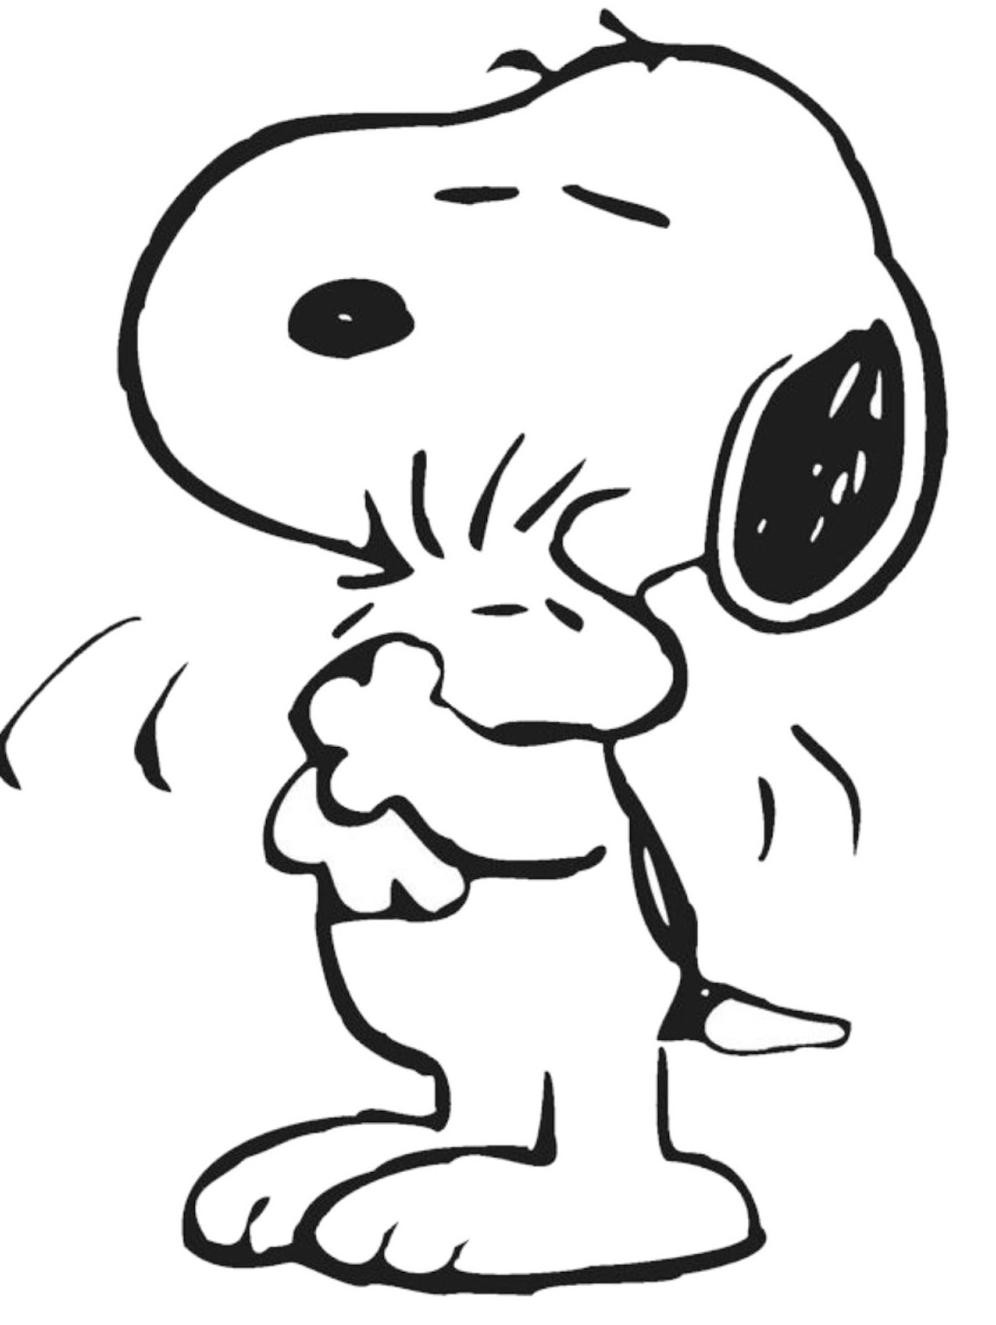 996x1325 Snoopy Coloring Page With Wallpapers Hd For Iphone Simple Snoppy